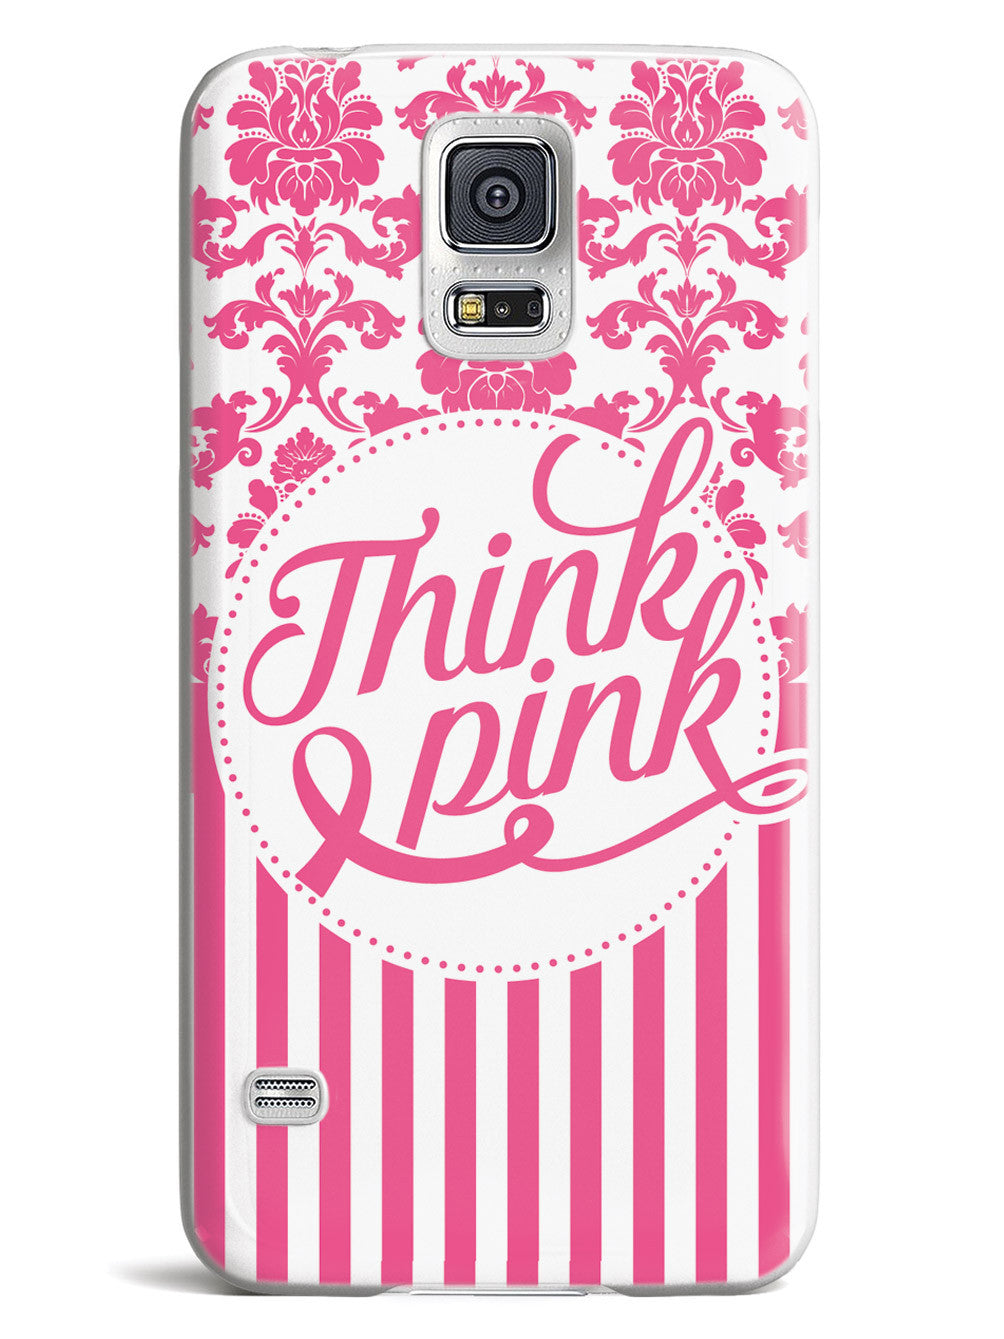 Think Pink - Breast Cancer Awareness Case